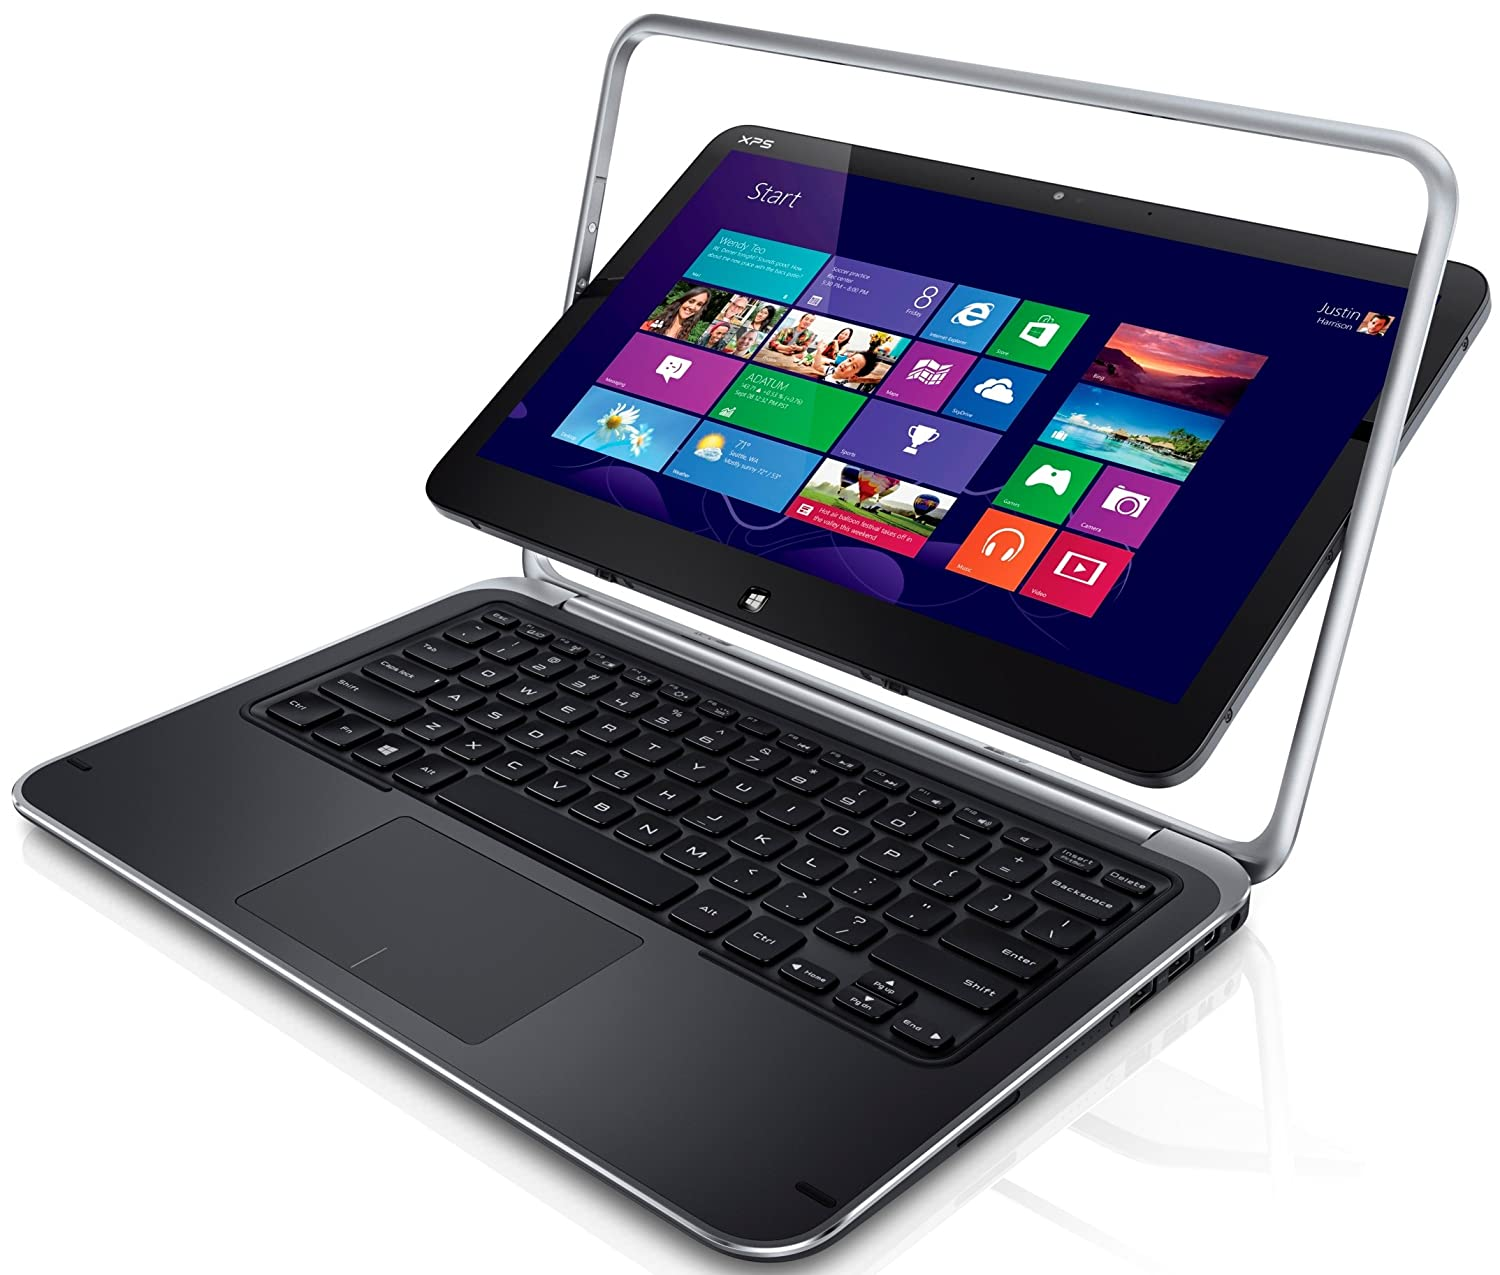 Dell XPS 12 XPSD12-5335CRBFB 12.5-Inch Convertible 2-in-1 Touchscreen Ultrabook